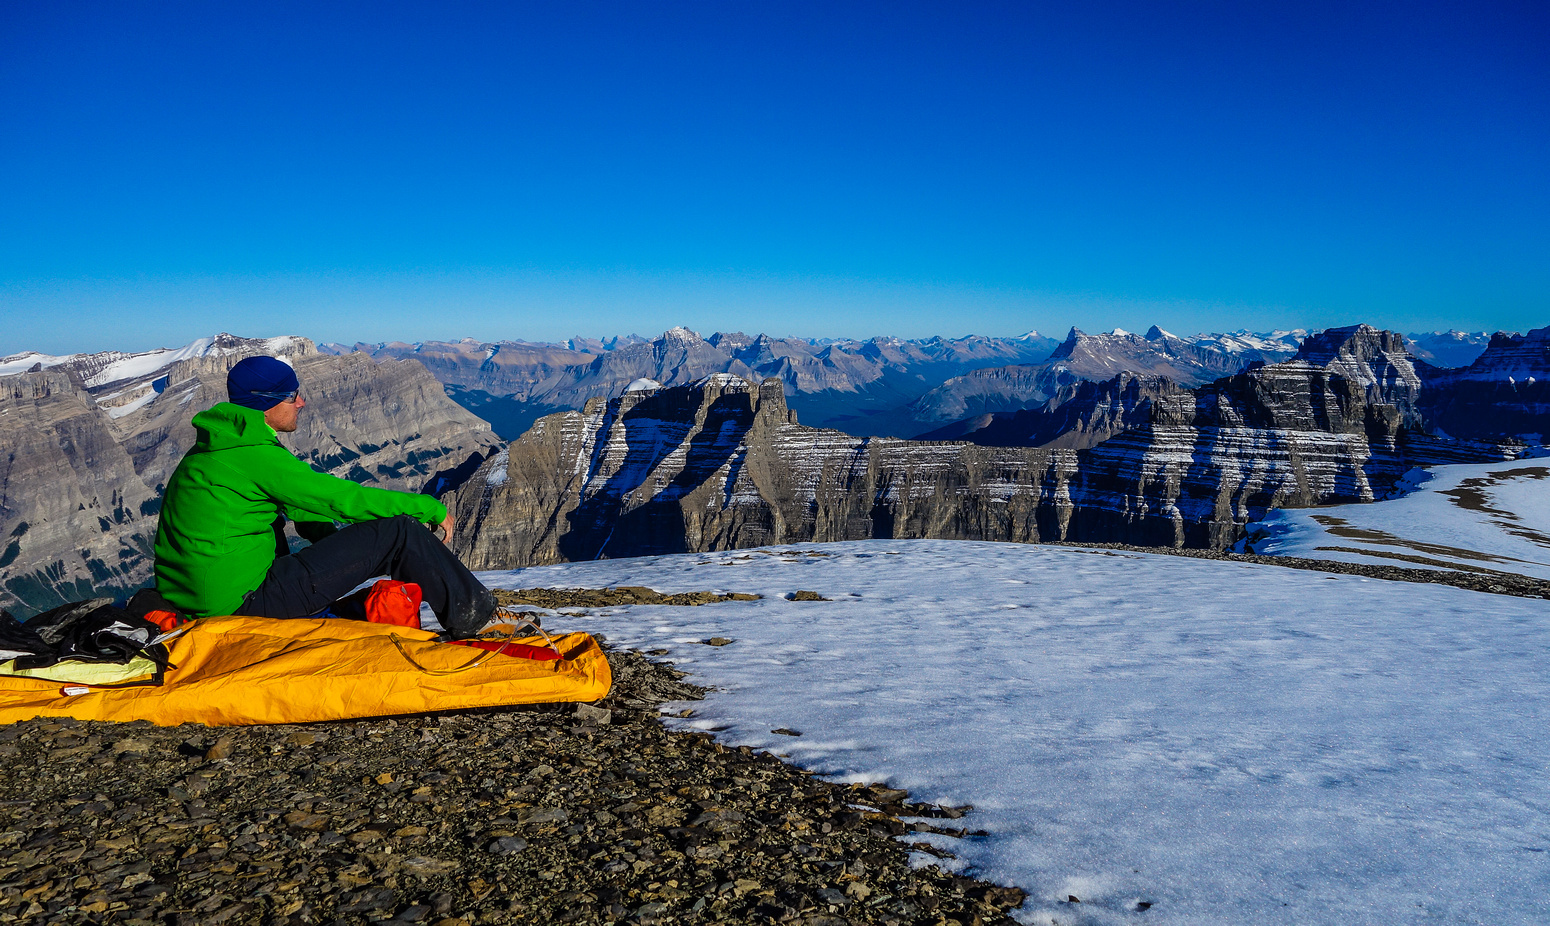 Vern takes in the awesome views from his bivy site. Murchison, Wilson, Sarbach, Chephren, White Pyramid, Howse and Erasmus